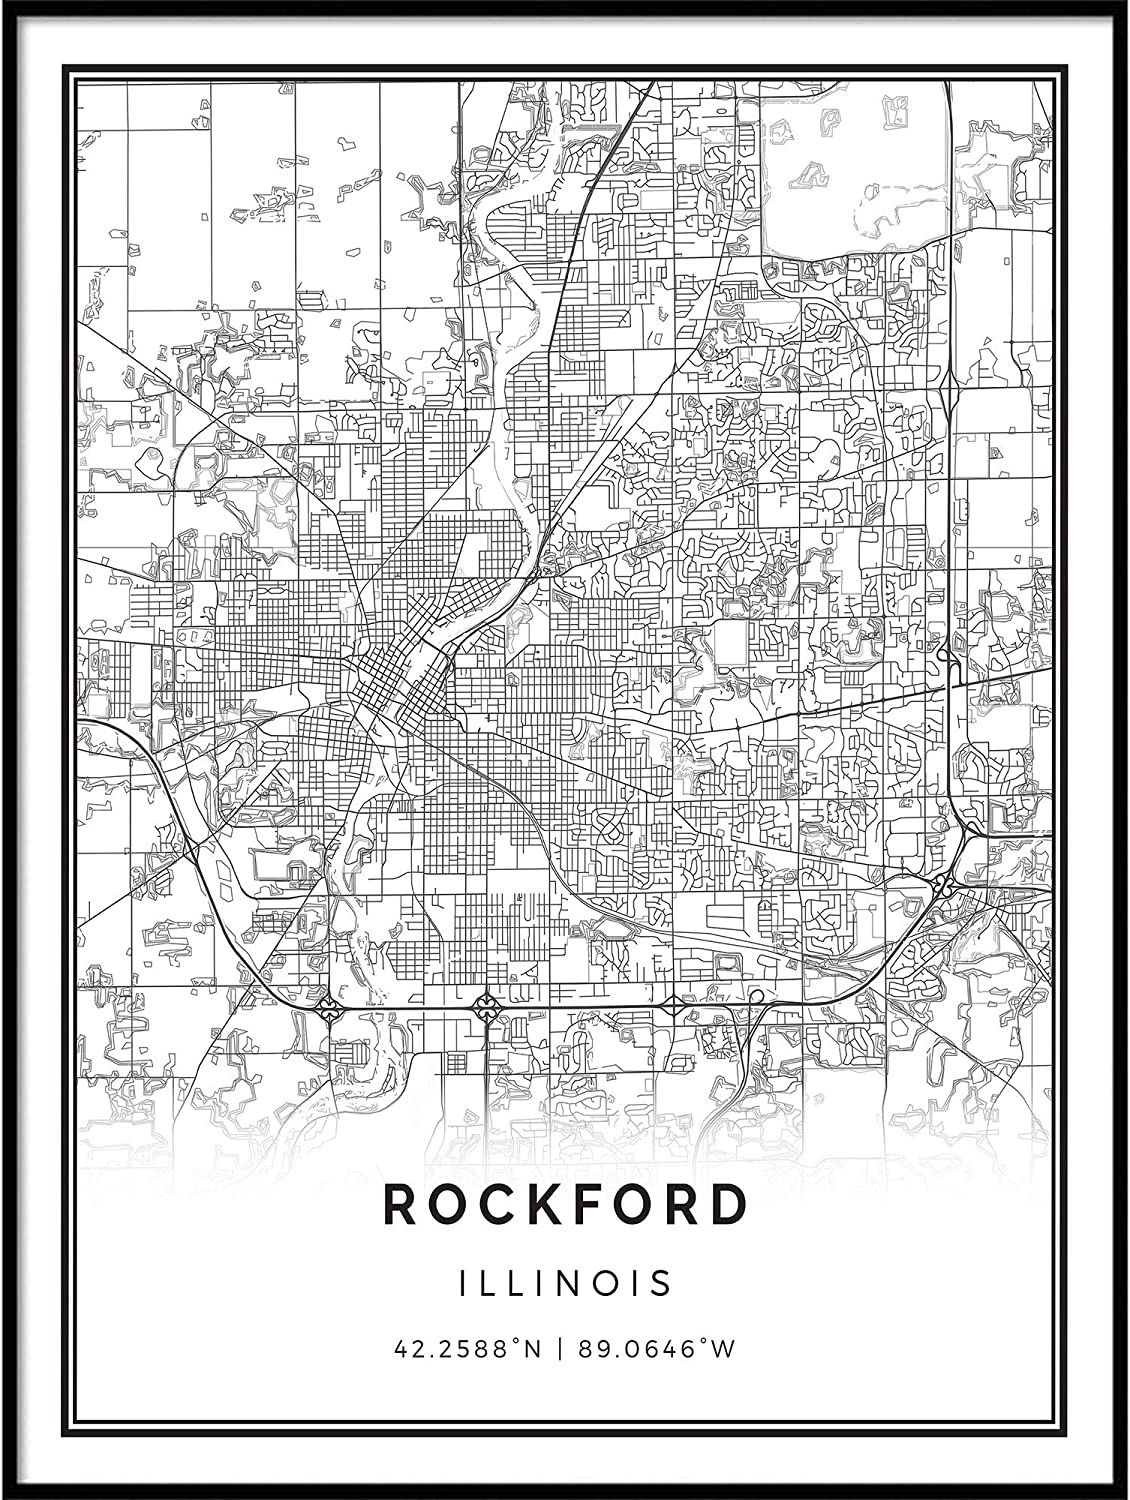 Squareious Rockford map Poster Print | Modern Black and White Wall Art | Scandinavian Home Decor | Illinois City Prints Artwork | Fine Art Posters 11x14